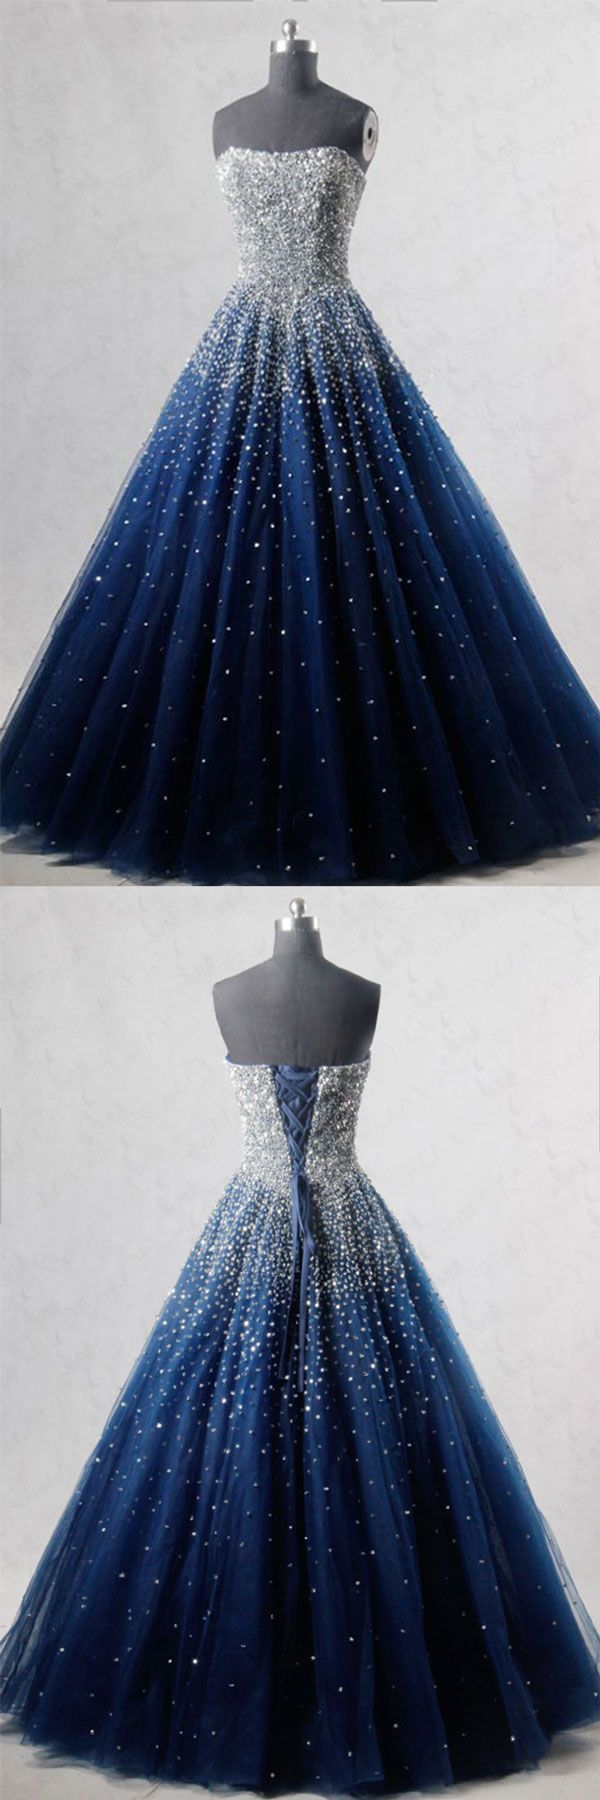 Blue sweetheart sequin tulle long prom dress, blue evening dress, blue formal dress #eveningdresses - Sale! Up to 75% OFF! Shop at Stylizio for women's and men's designer handbags, luxury sunglasses, watches, jewelry, purses, wallets, clothes, underwear & more!